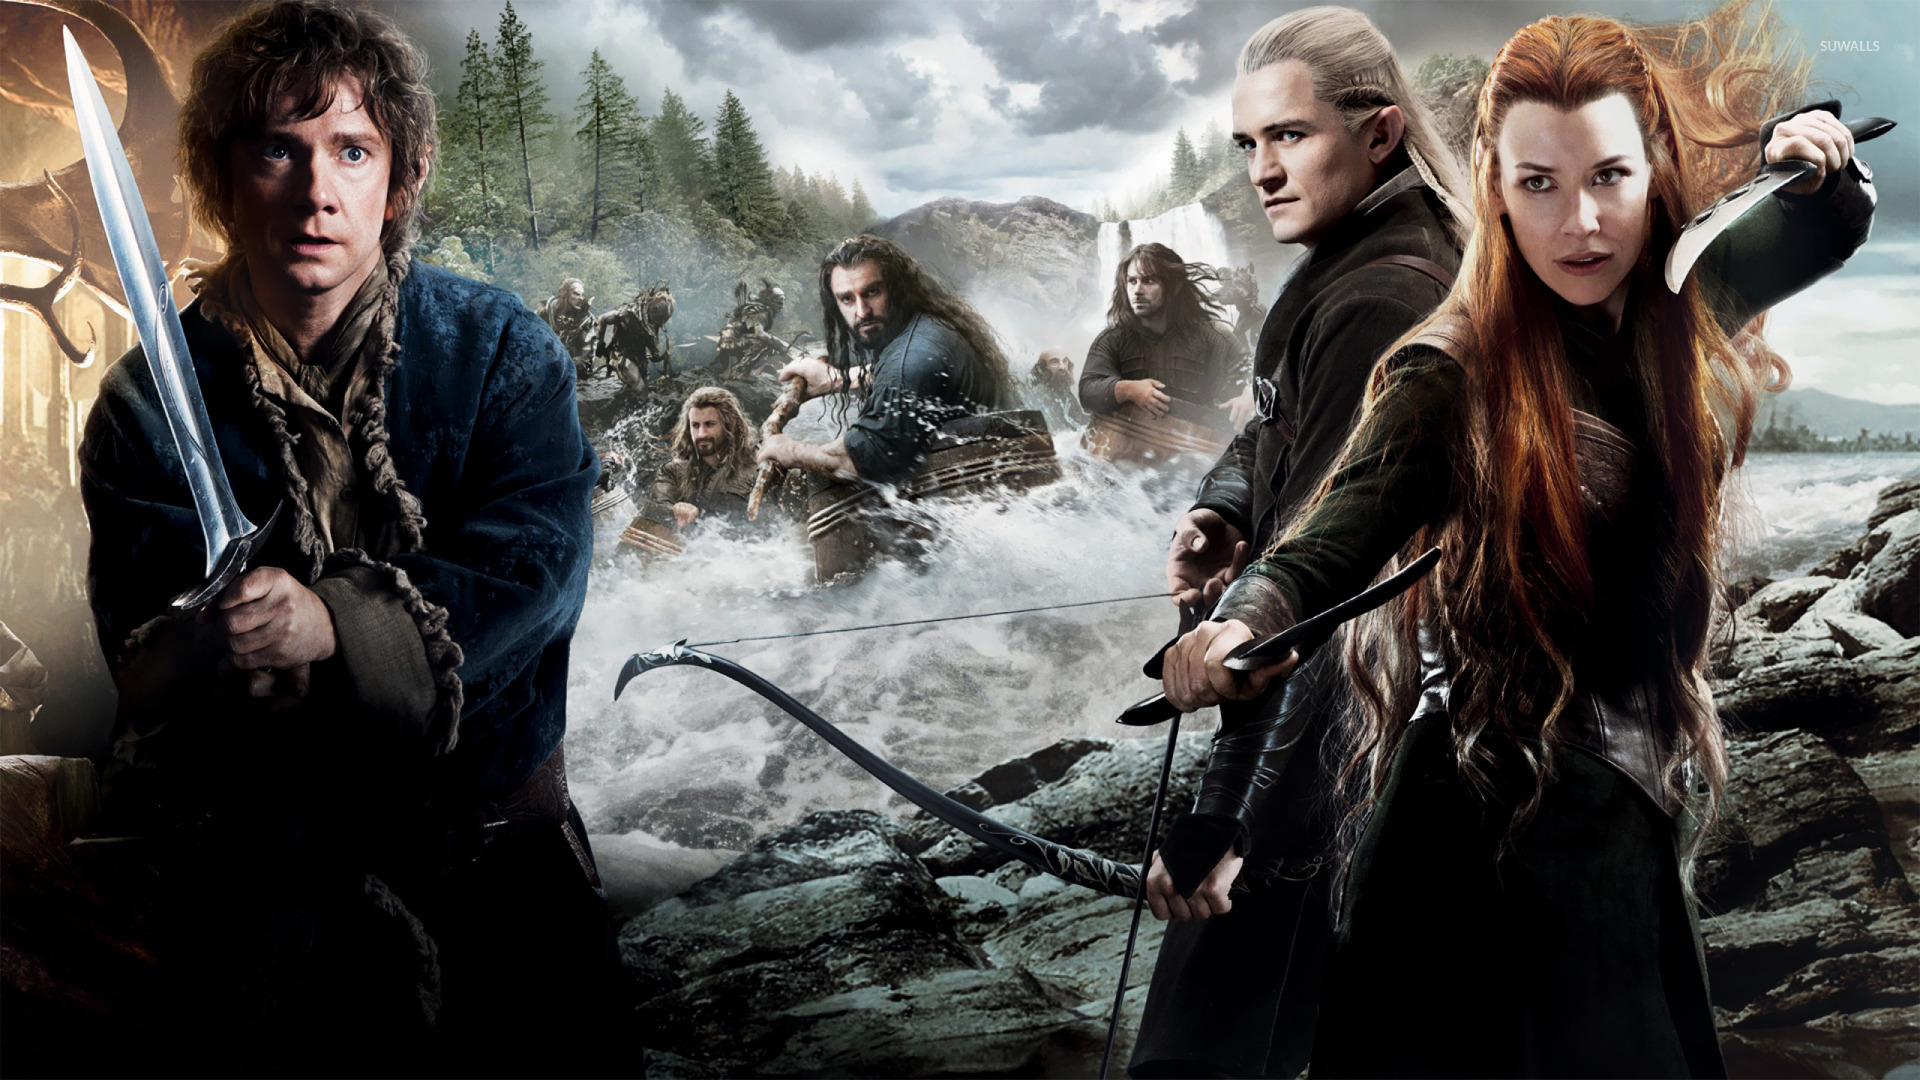 The Hobbit: The Desolation of Smaug [4] wallpaper - Movie